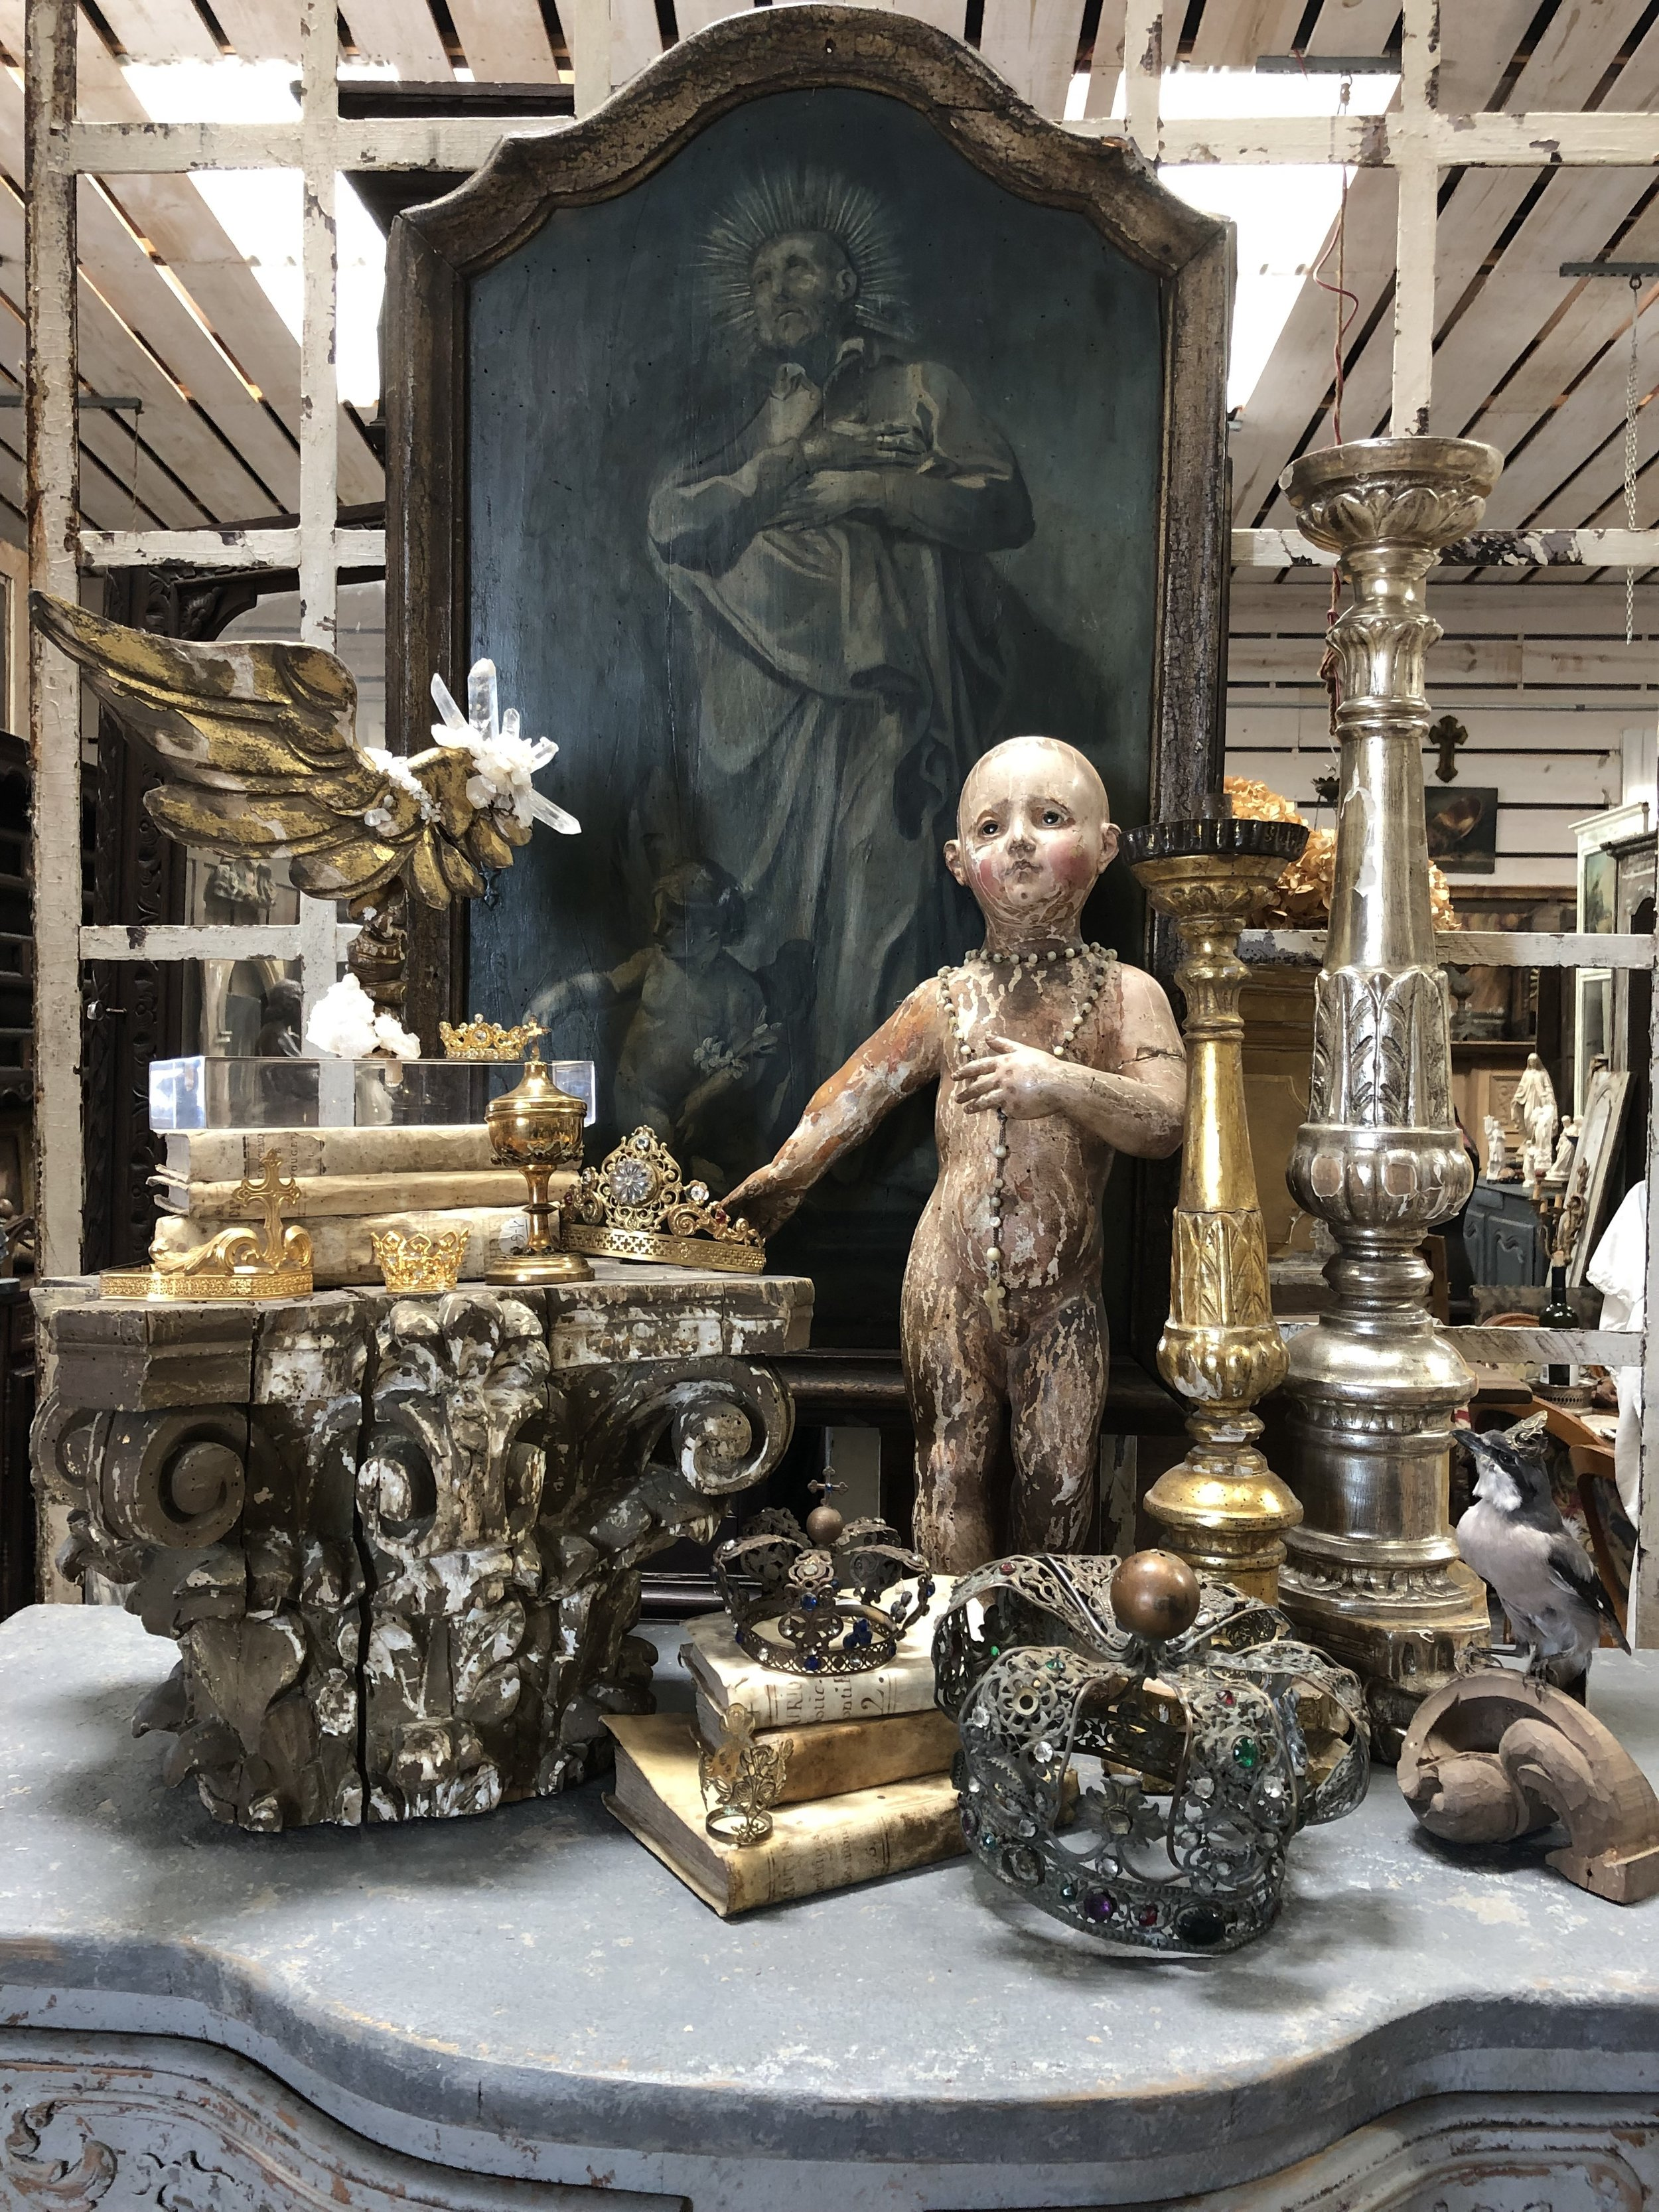 An 18th-century Italian Christ Child is surrounded by treasures found on the latest buying trip. Antique crowns, altar sticks, vellum books, and an 18th- century angel's wing mounted on a modern base come together to tell a story.